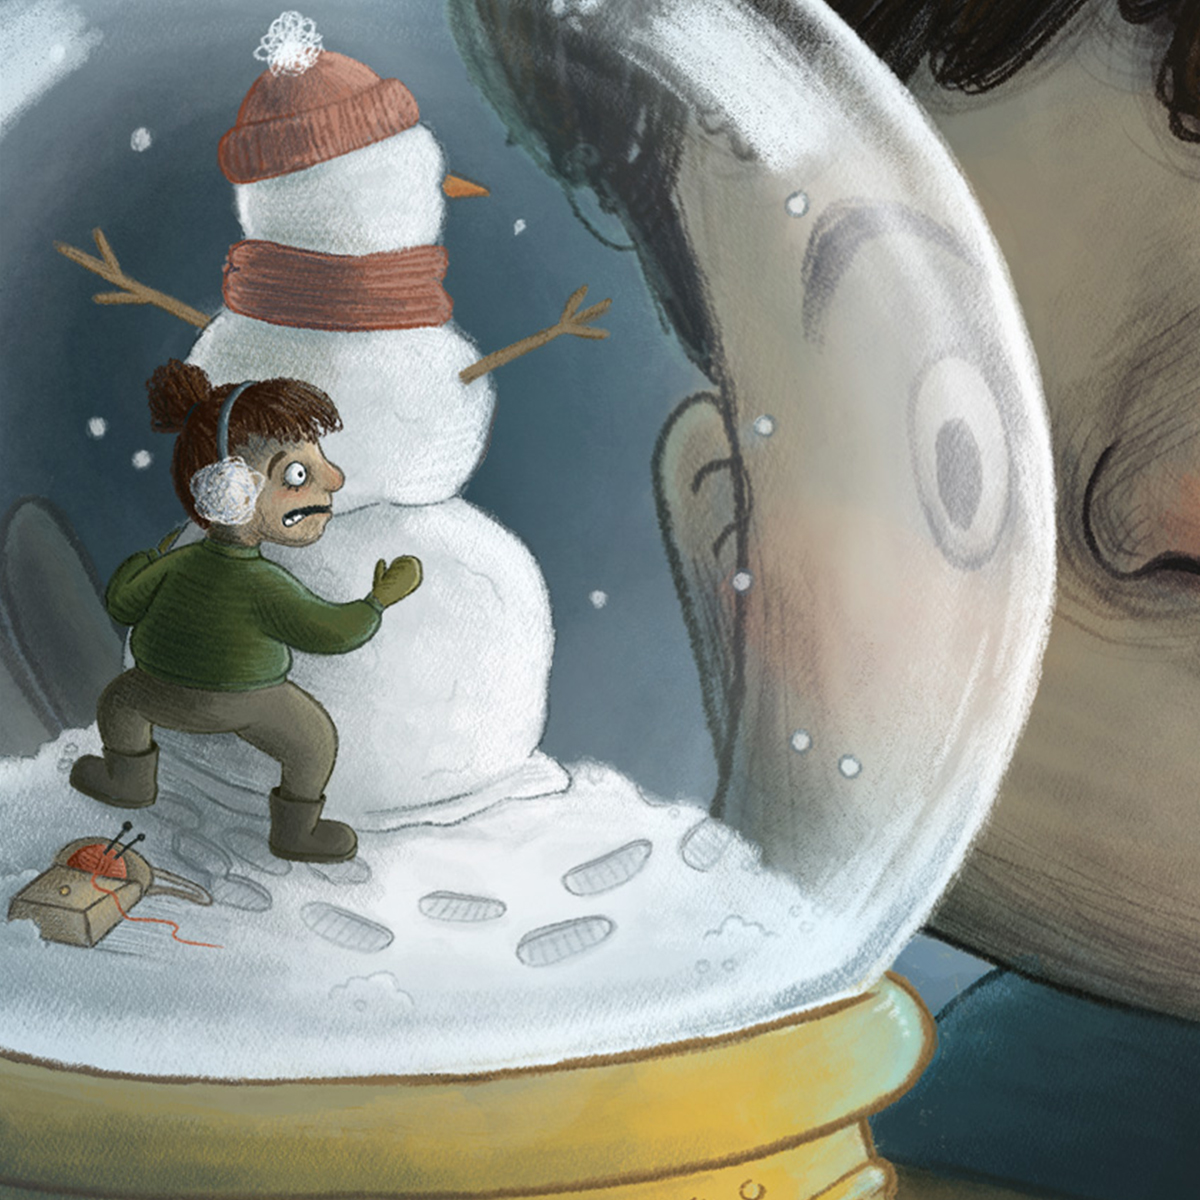 children's illustration of a boy looking into a snow globe while a tiny girl tries to hide inside